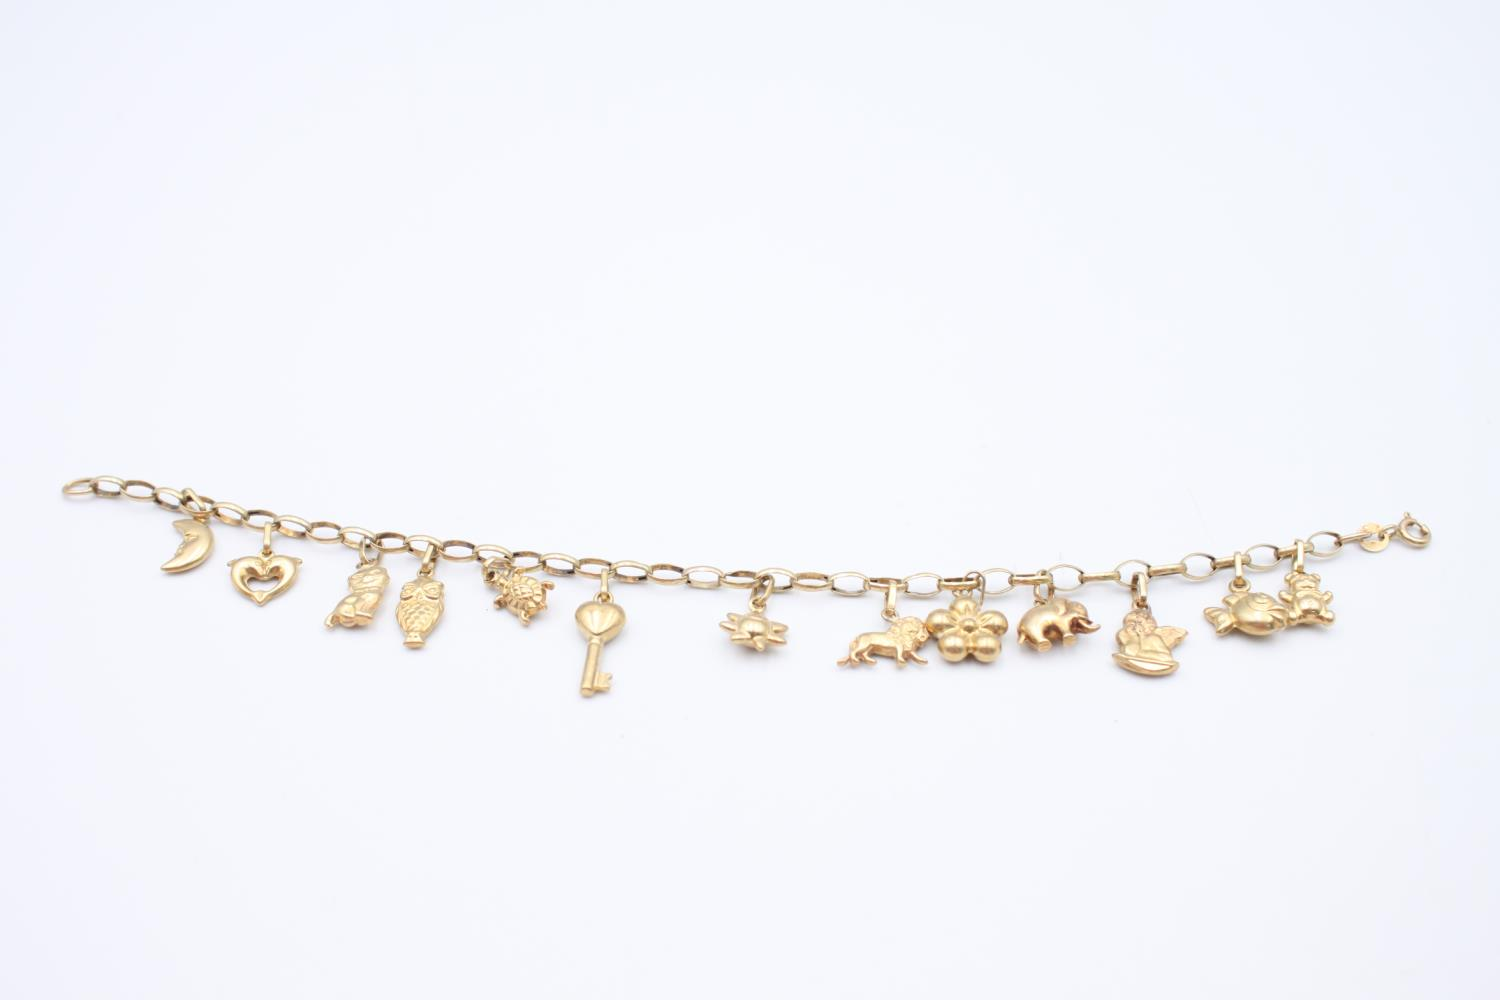 vintage 9ct gold rolo link charm bracelet with a variety of charms 5.7g